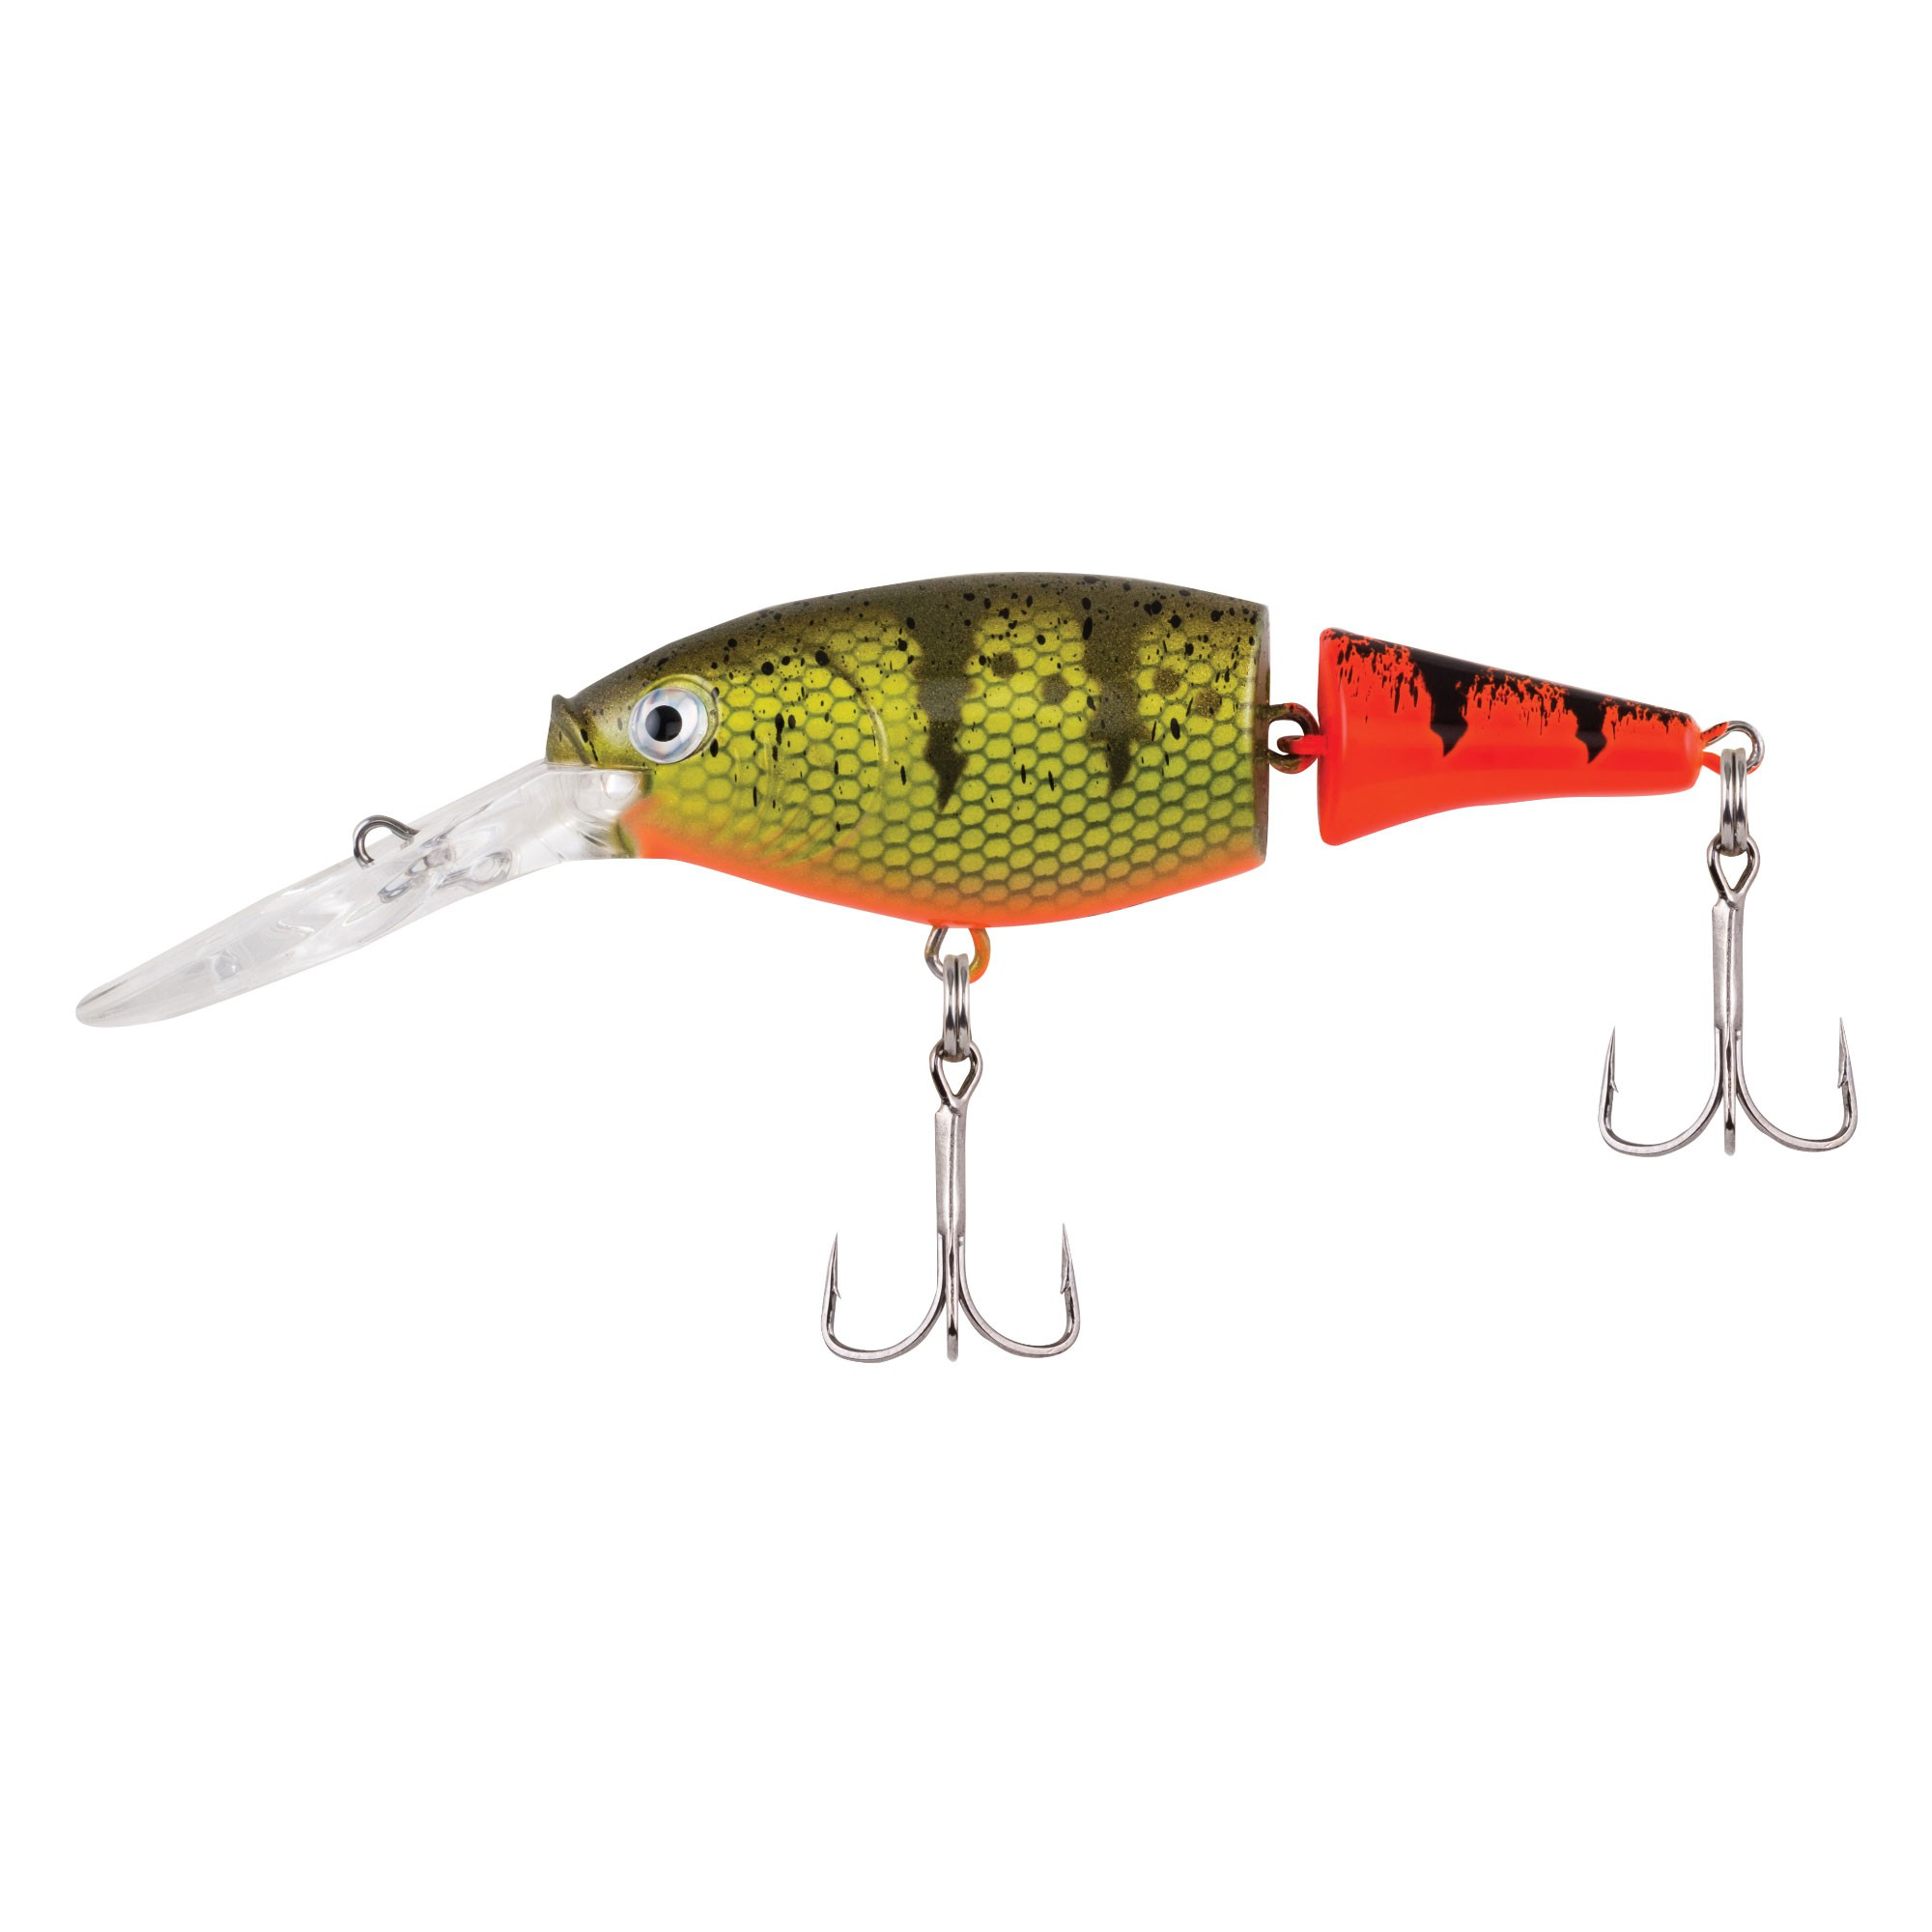 Berkley Flicker Shad J.F.R. hot perch